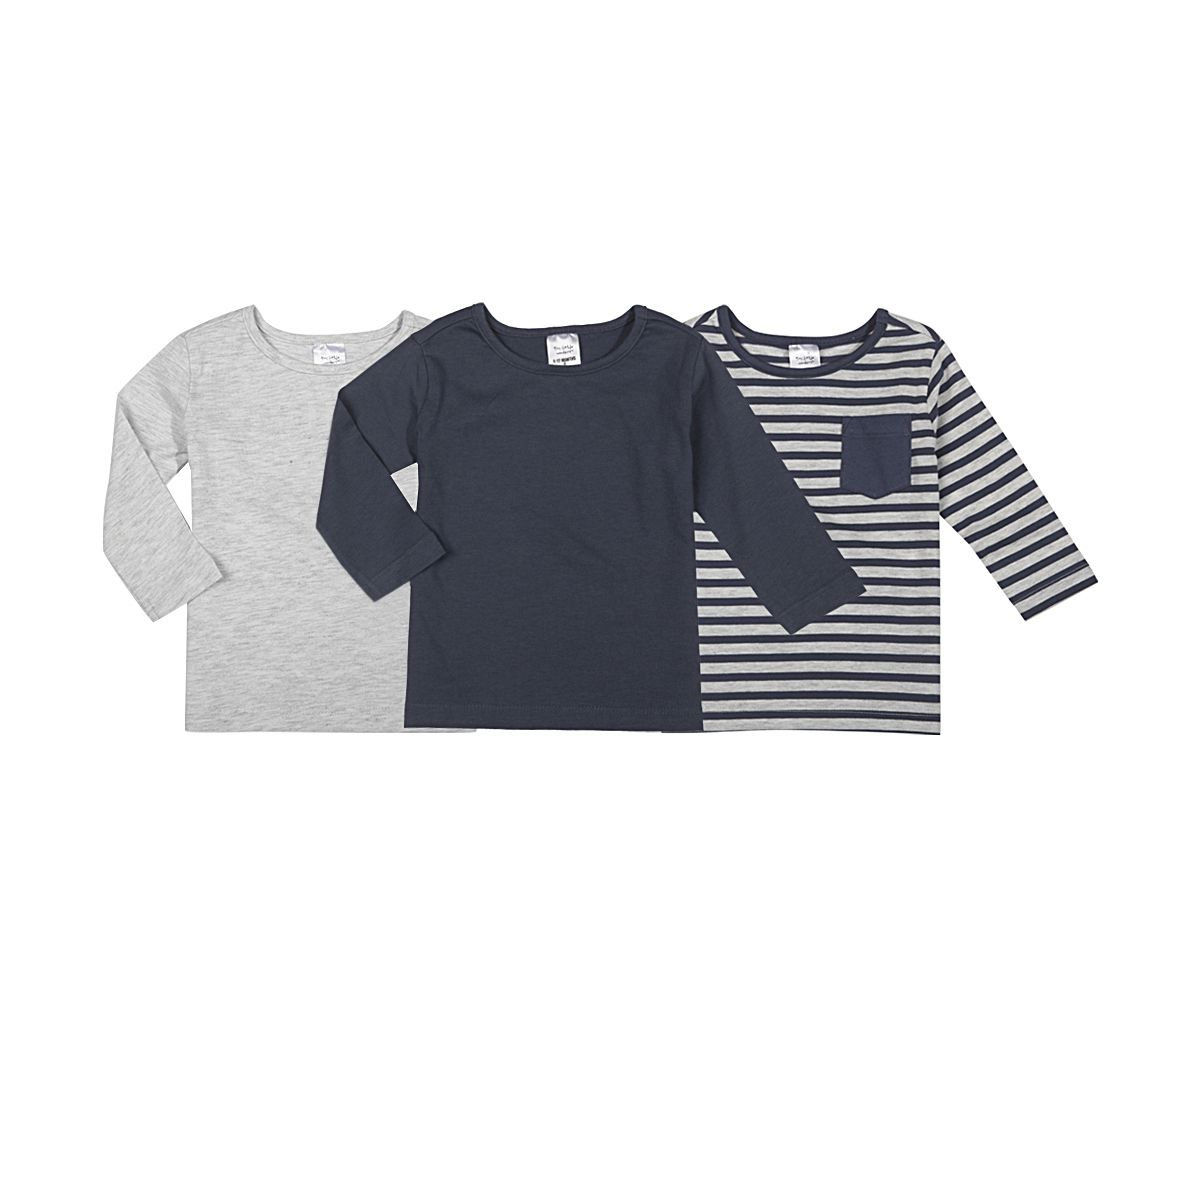 Infant Carrier Kmart 3 Pack Crew Tees Kmart Tops Tees Fashion